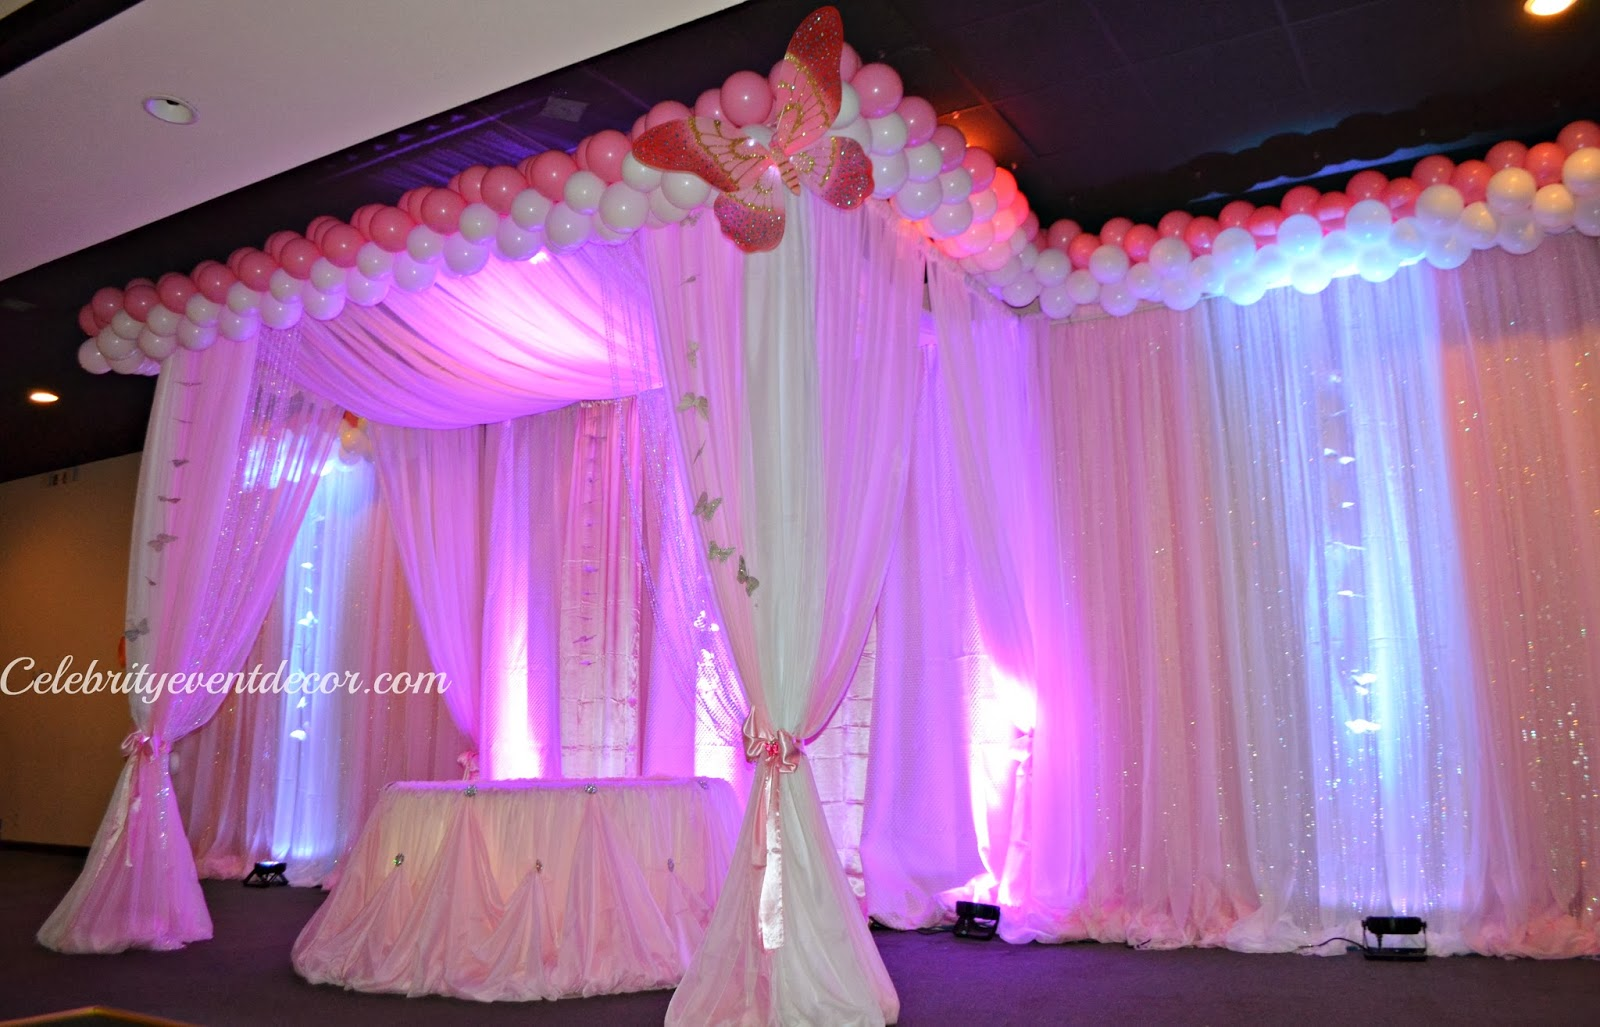 Celebrity event decor banquet hall llc for 1st birthday hall decoration ideas